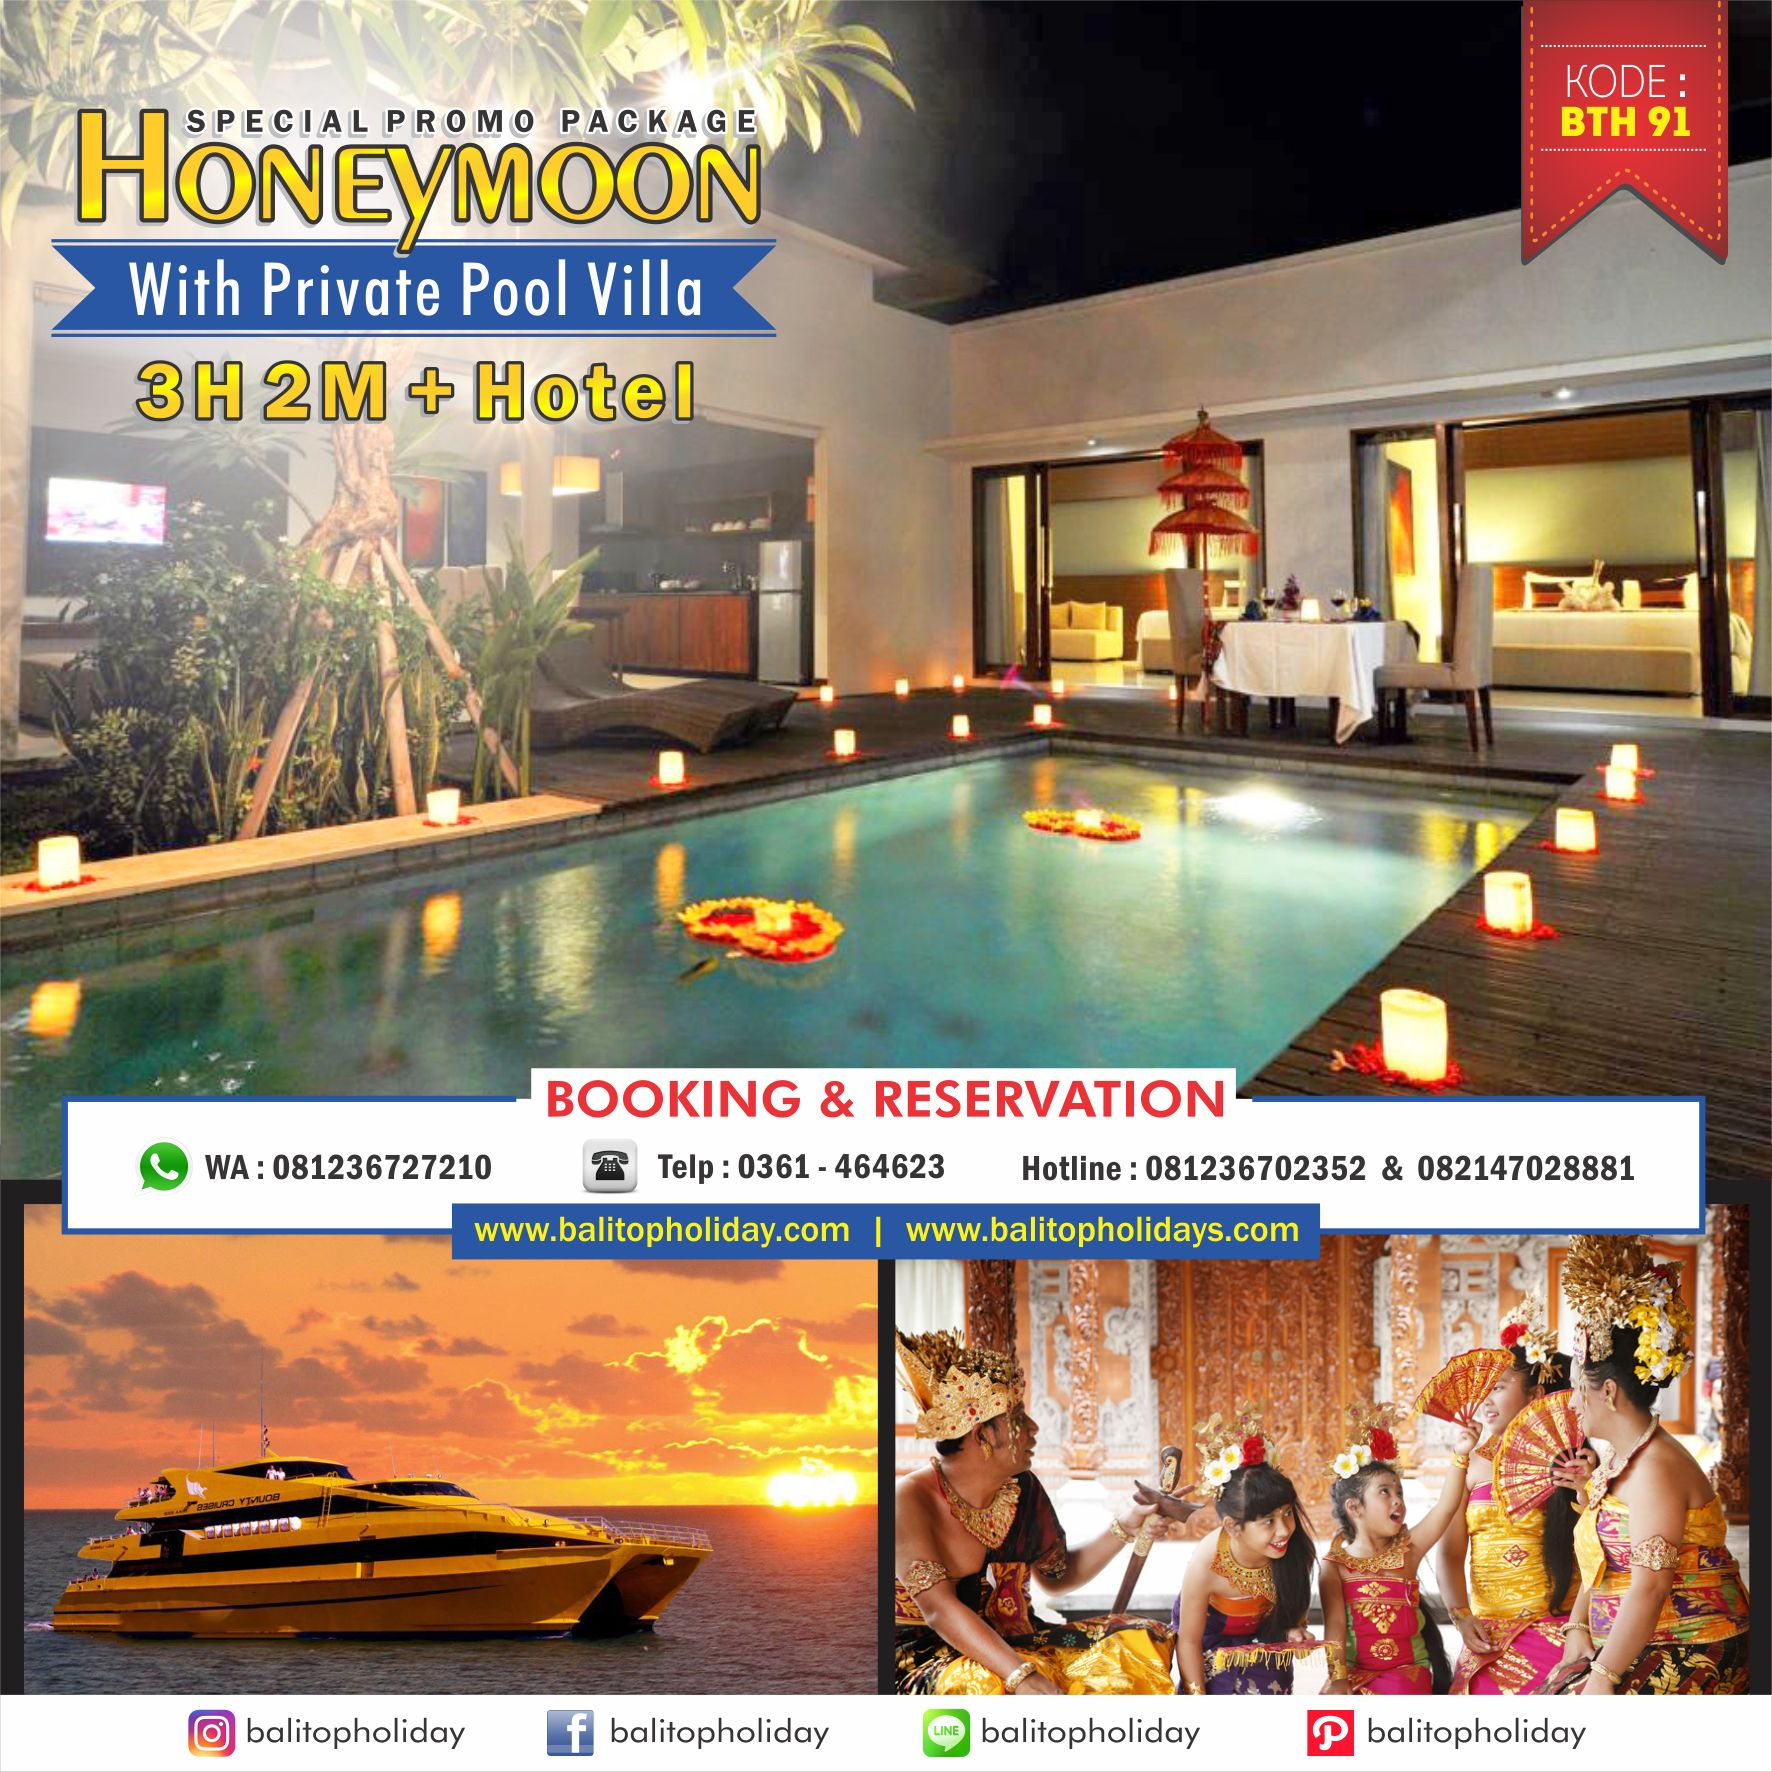 Paket Honeymoon Bali Dengan Private Pool Villa